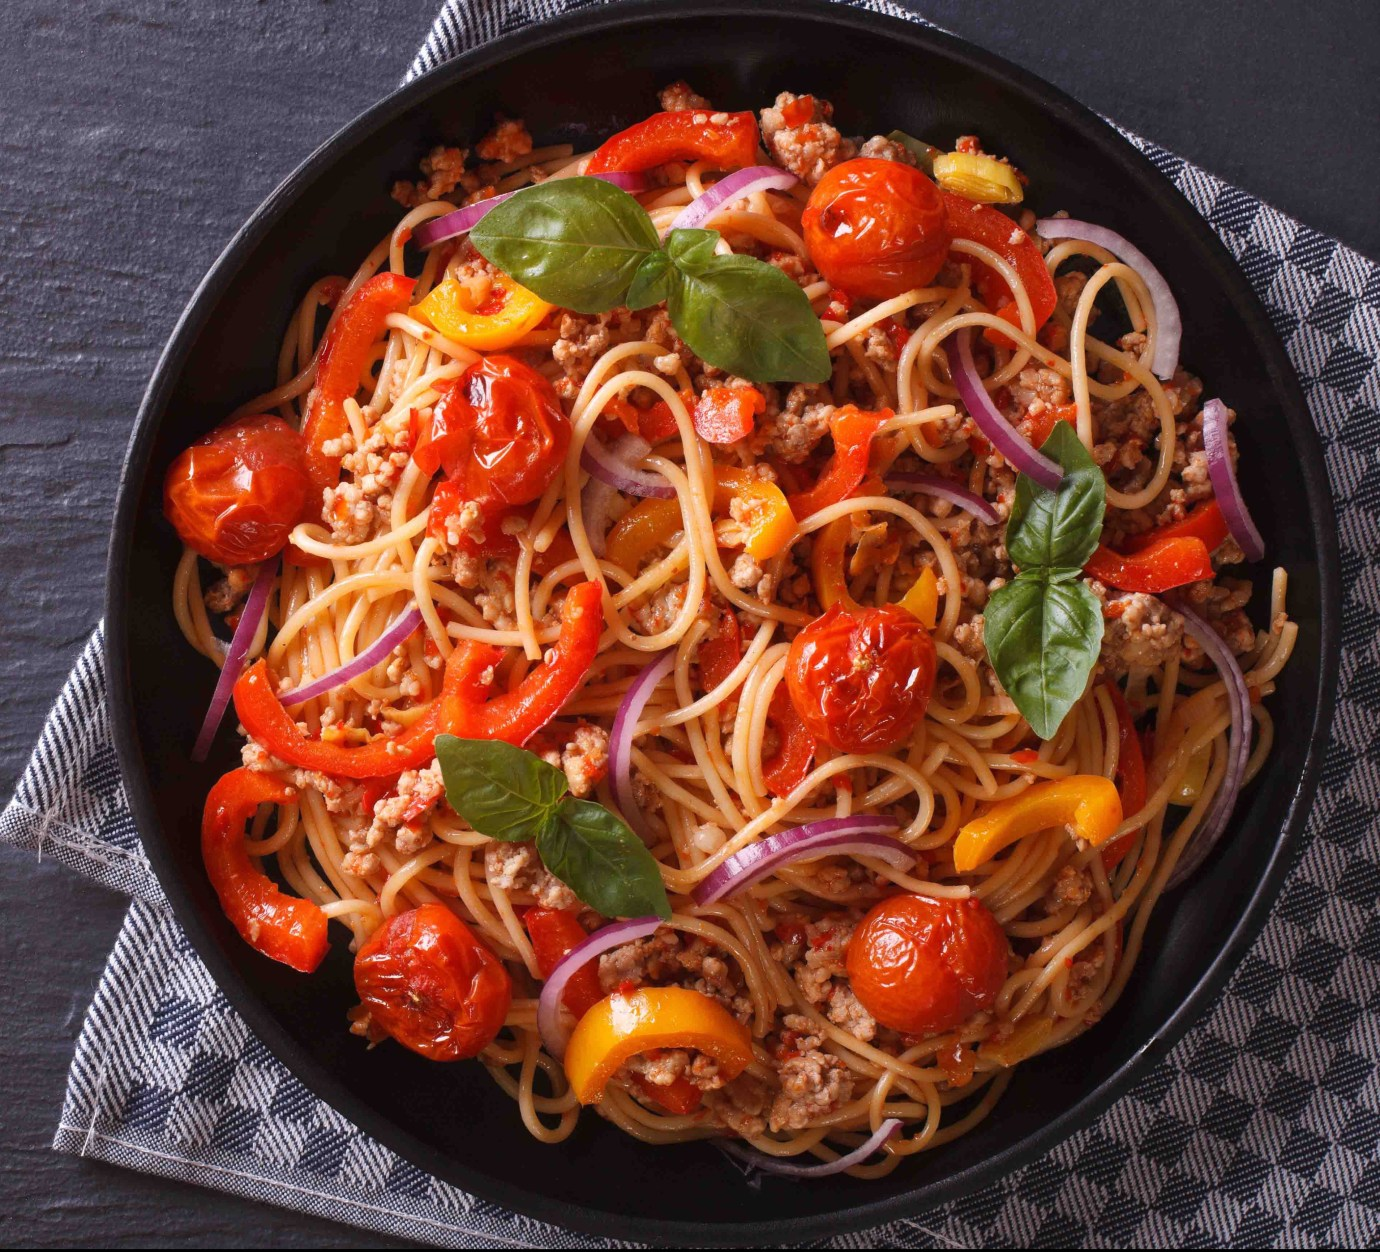 Vegan or meat spaghetti